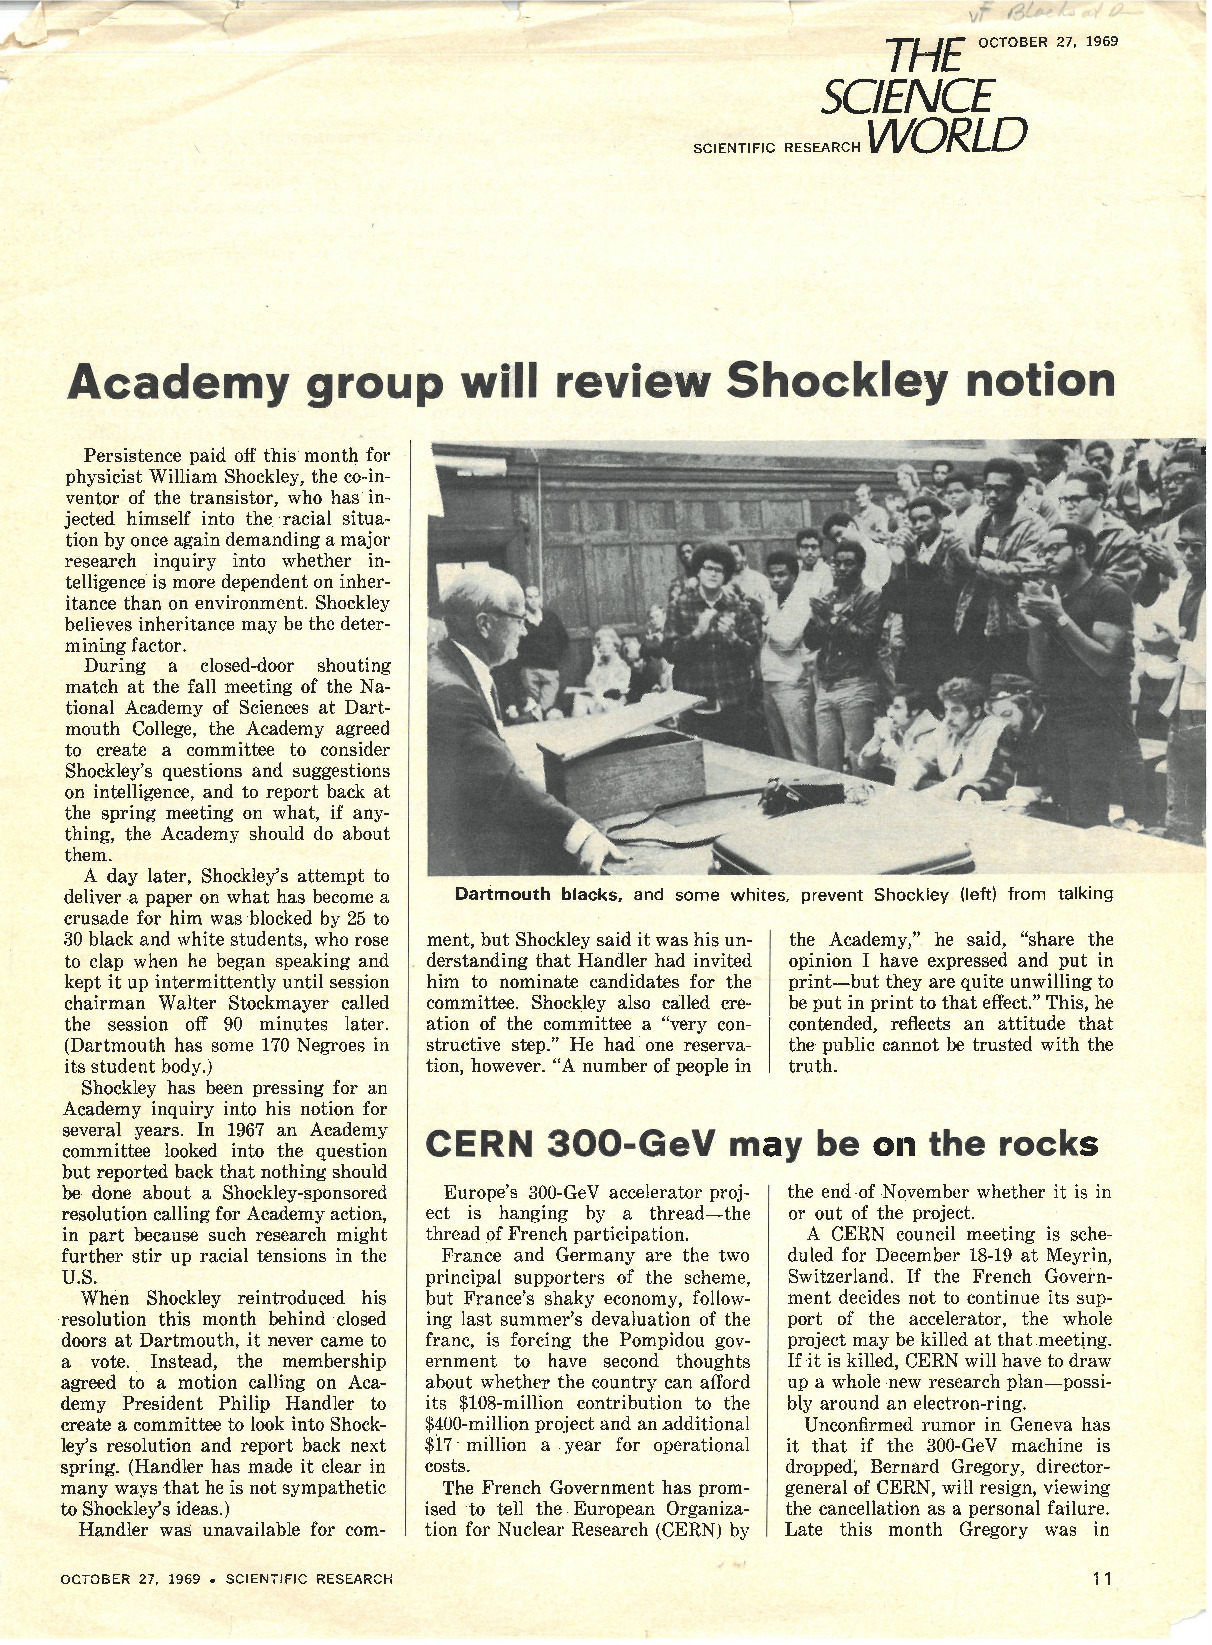 This article in Science World describes how the National Academy of Sciences created a committee to investigate whether human intelligence is more dependent on inheritance (i.e. race in this context) or on the environment, upon the request of physicist William Shockley. The article also details Shockley's attempt to present a controversial paper examining correlations between IQ and race at Dartmouth, and how it was successfully halted by a group of 20-30 Dartmouth students who clapped intermittently for 90 minutes until the speech was called off.